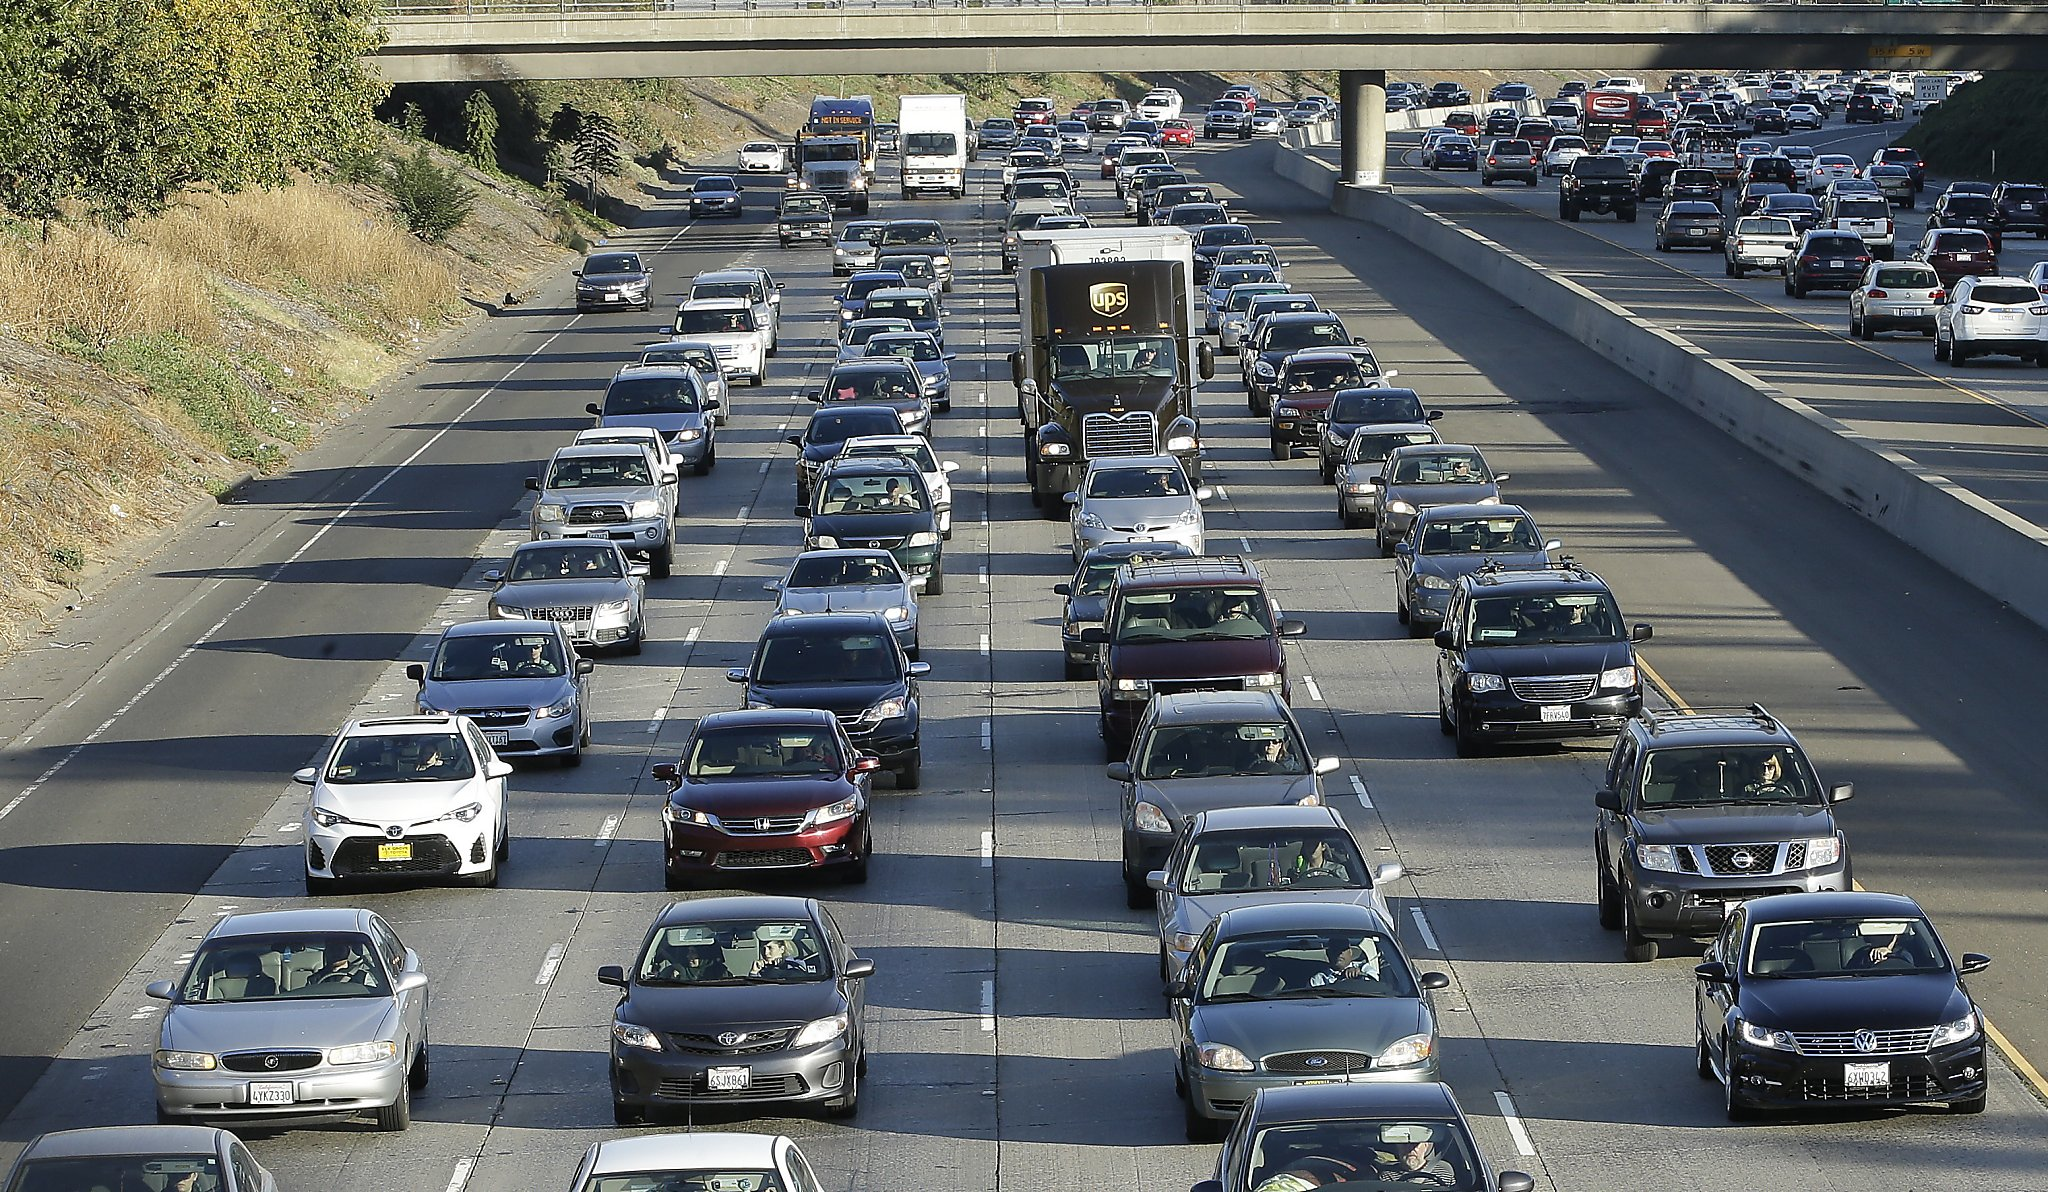 In worrying sign, California's greenhouse gas emissions rise slightly in latest tally